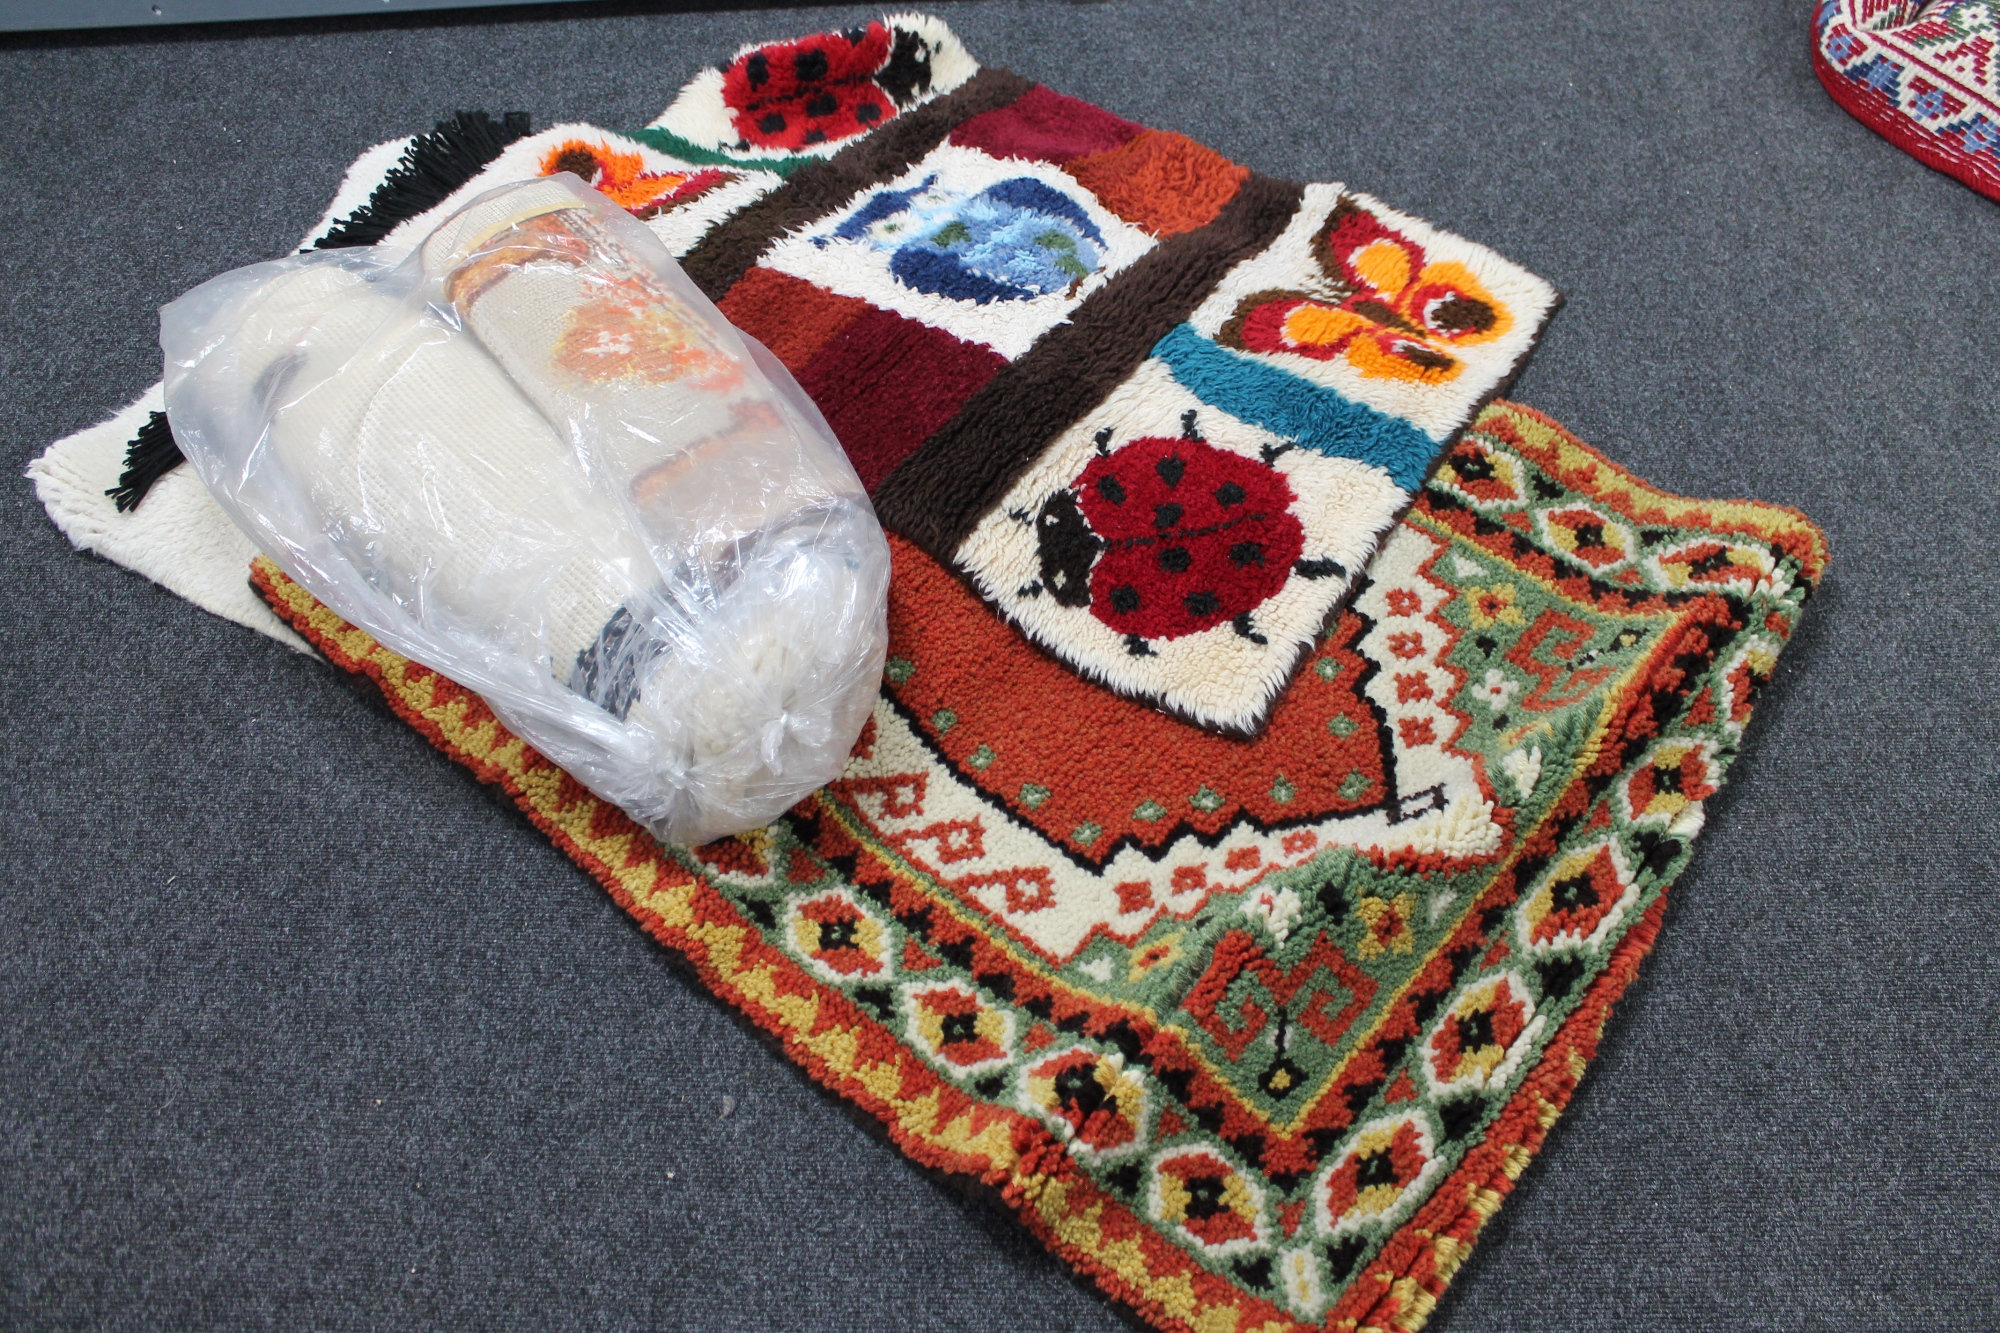 Lot 164 - A quantity of wool hangings and floor coverings